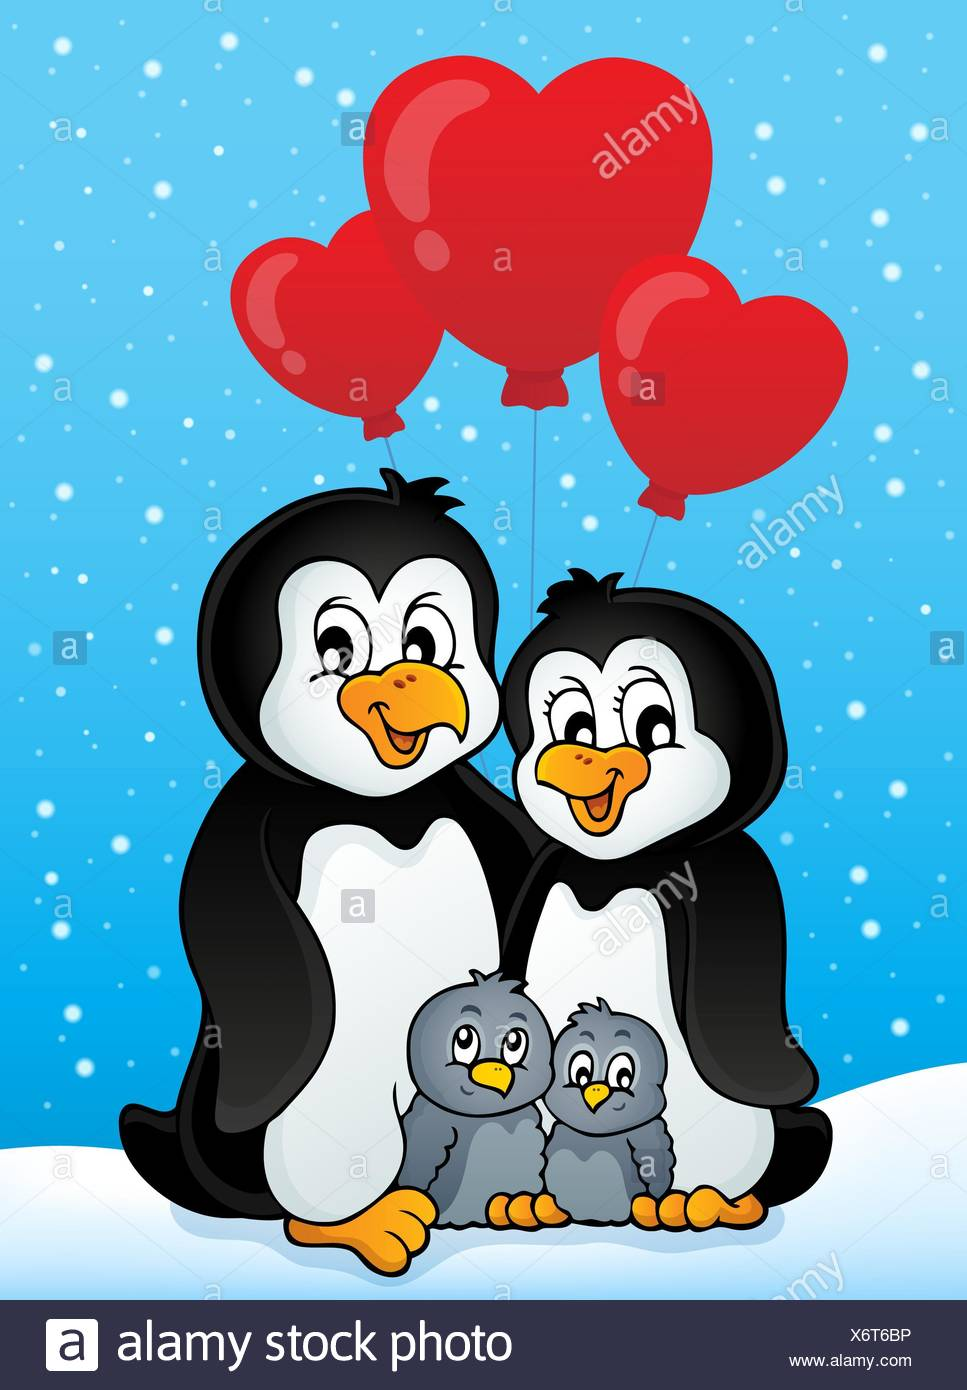 Valentine penguins in snow - Stock Image